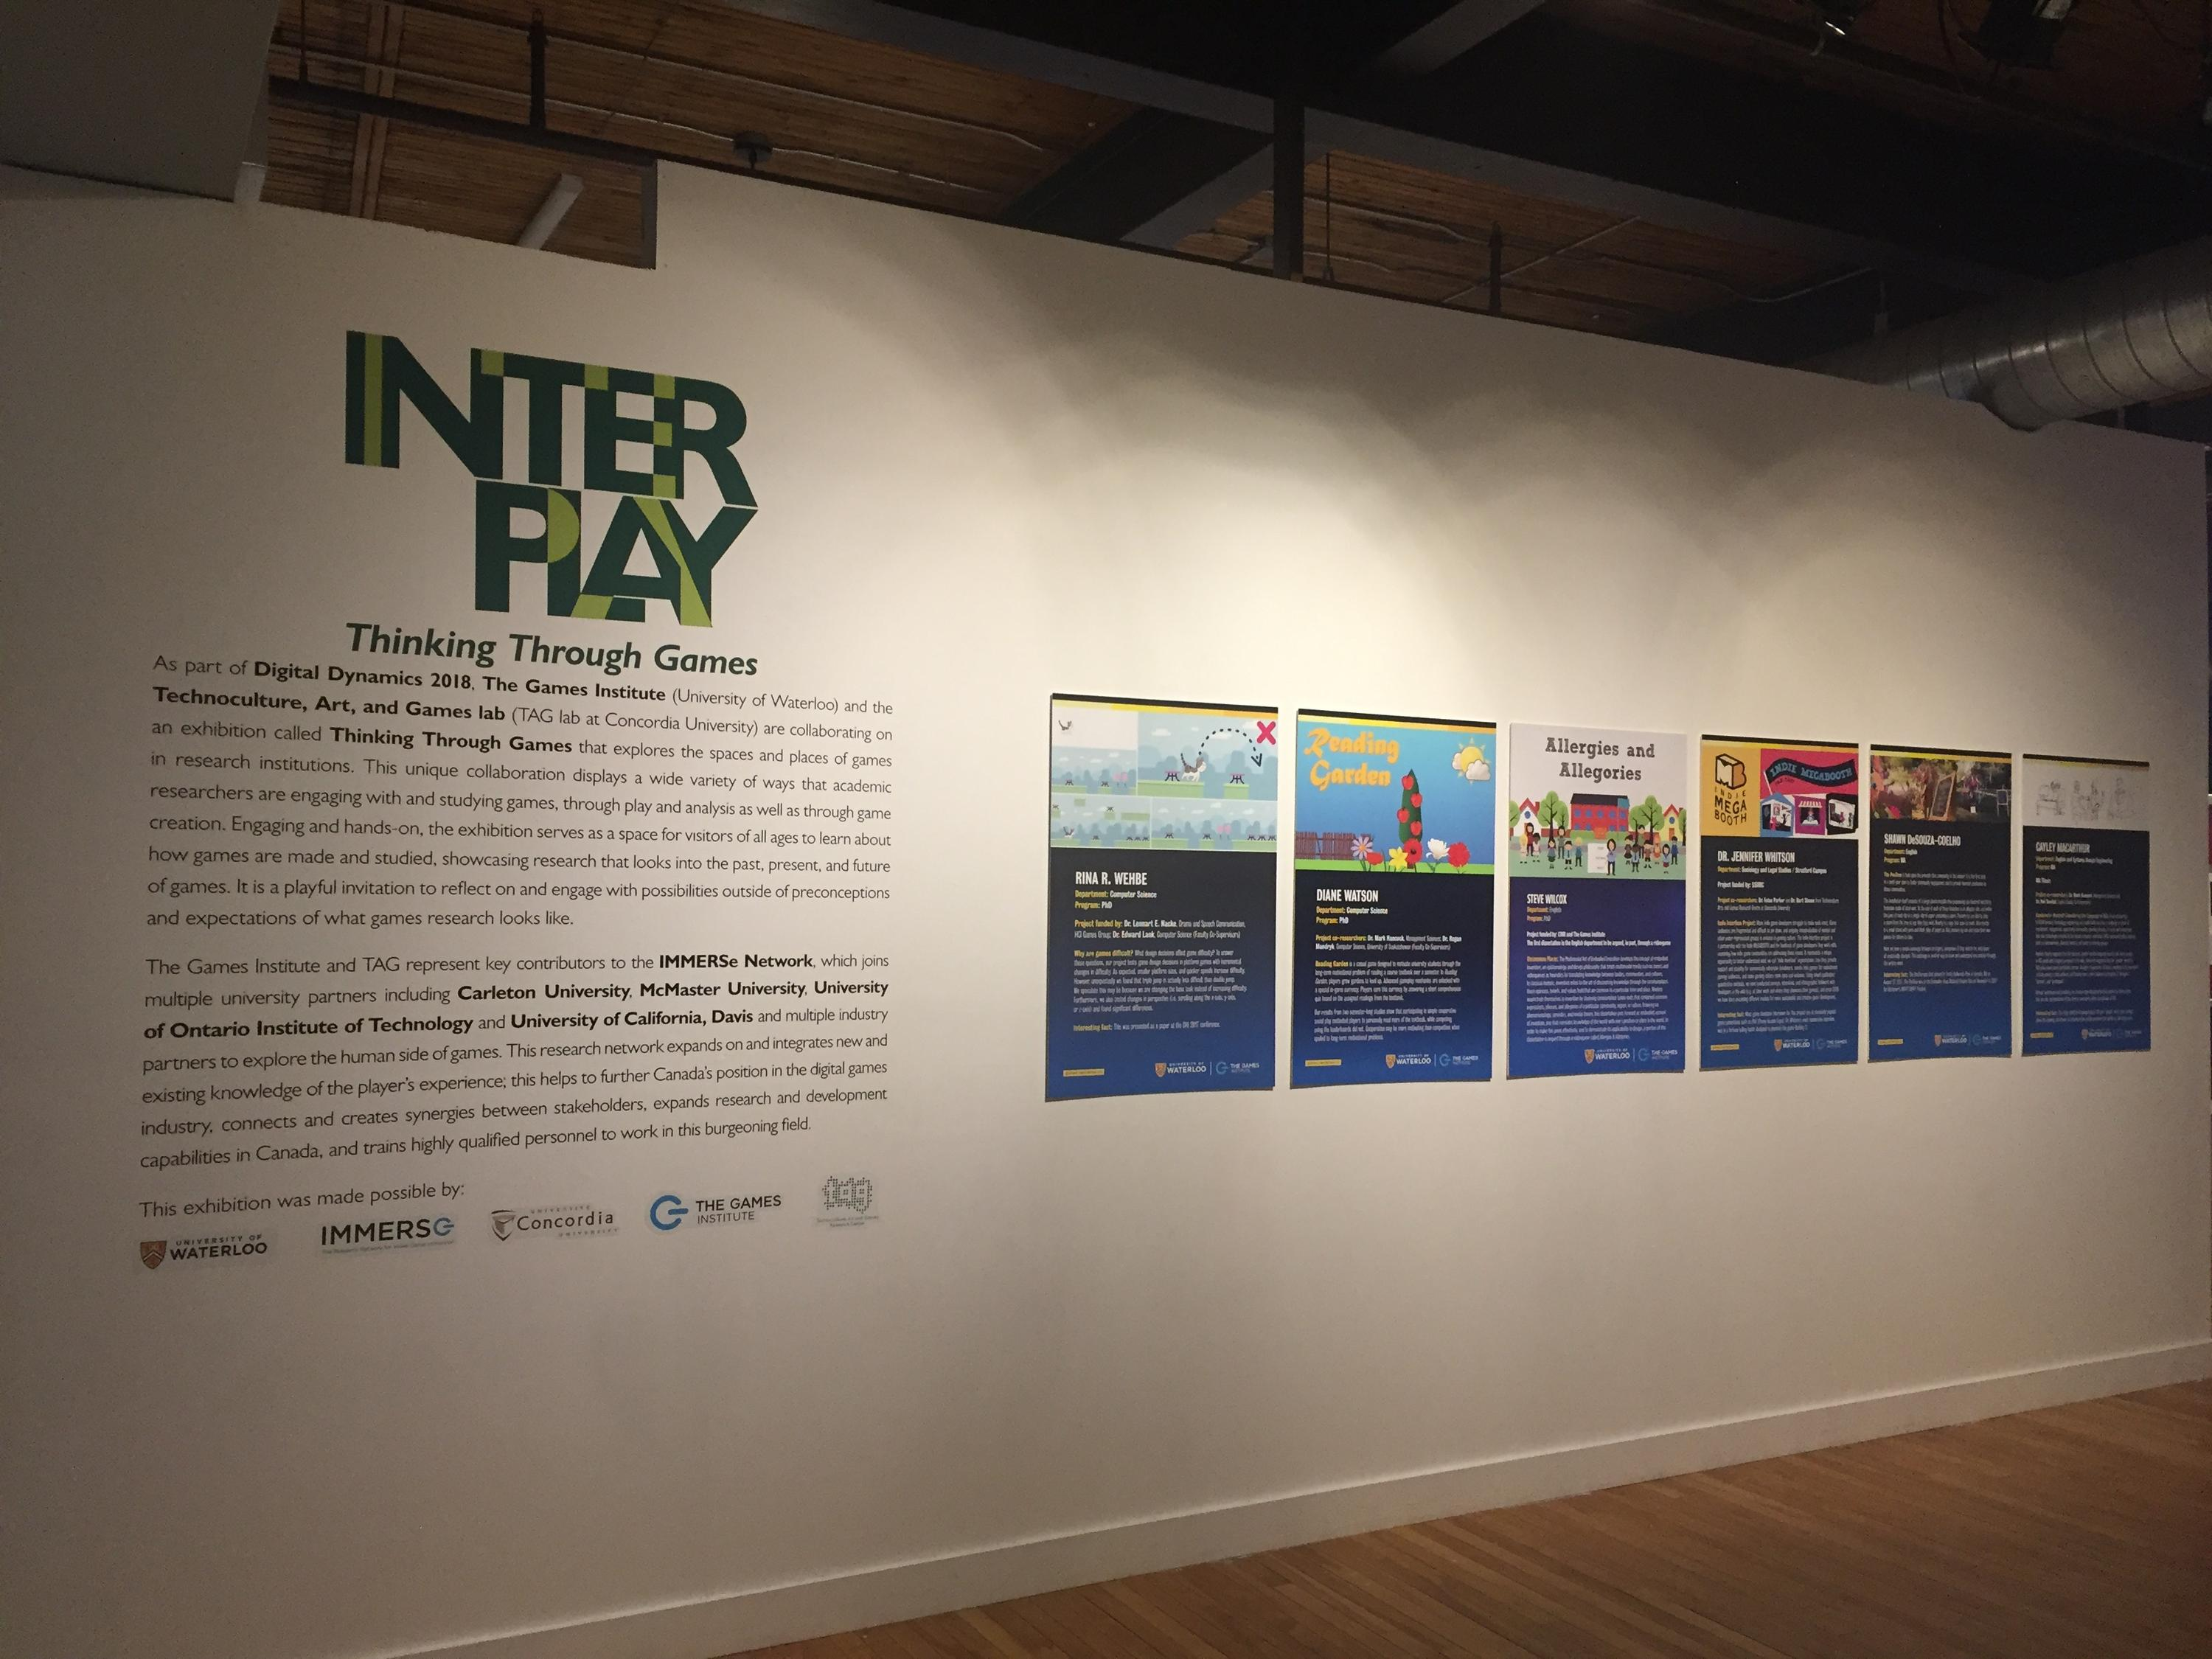 INTERPLAY Exhibit Title Wall at THEMUSEUM